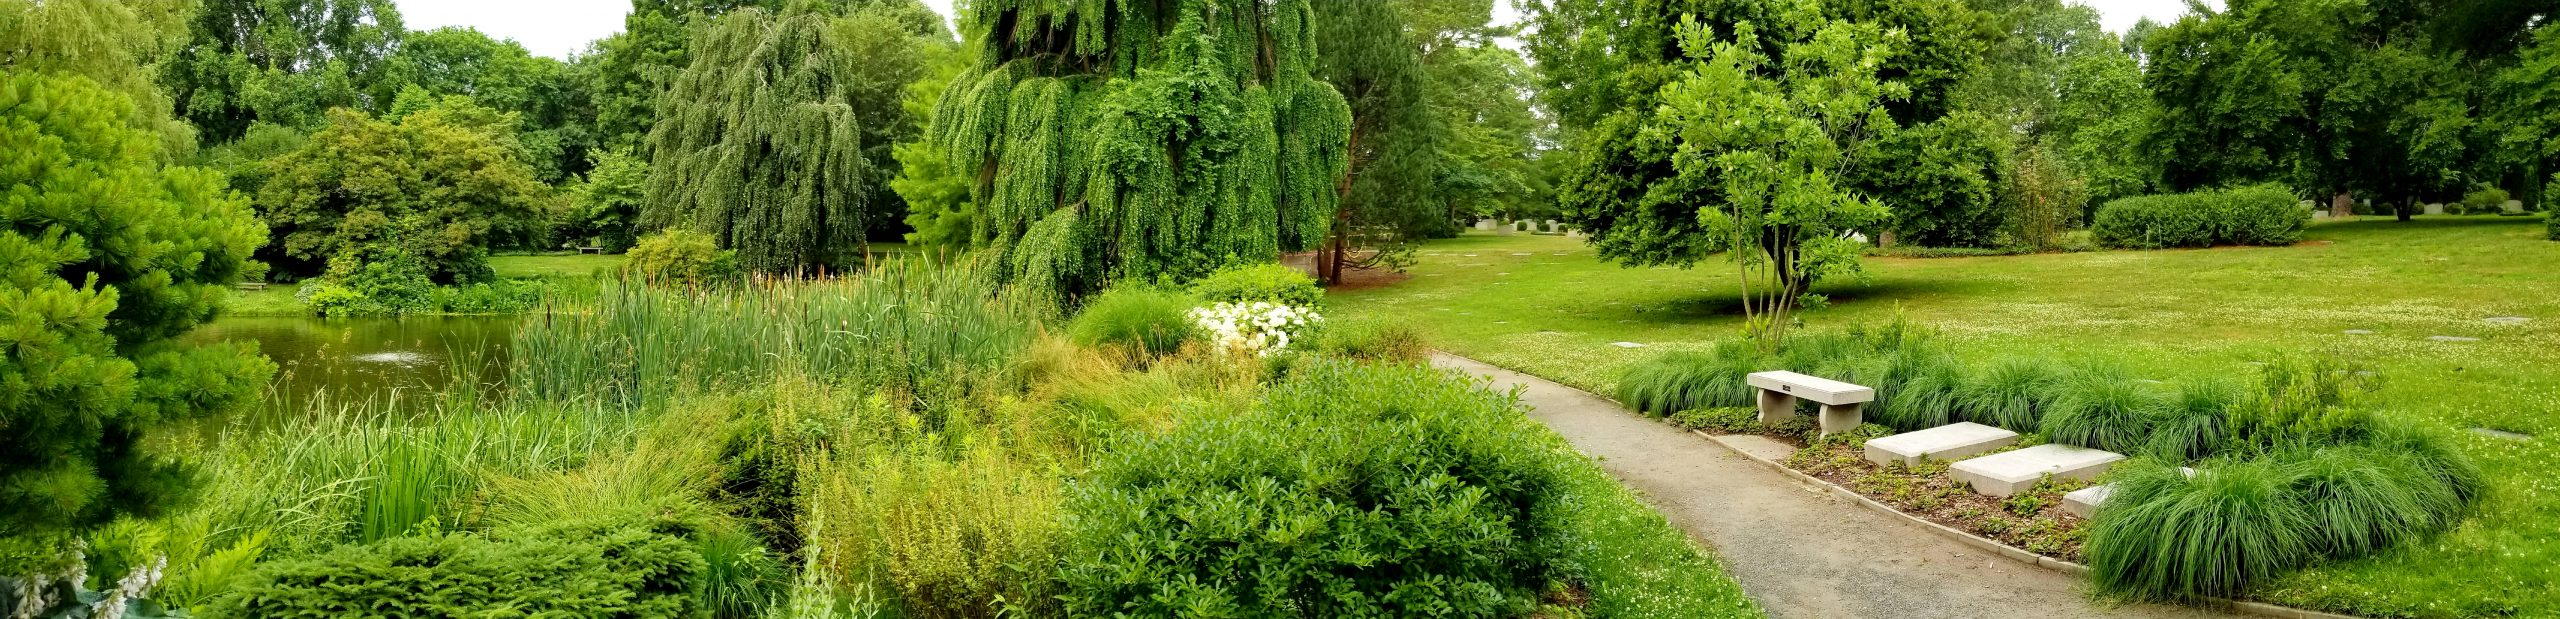 Three granite tablets are set into a bed of groundcovers and ornamental grasses at the edge of a crushed stone path. Willow Pond, edged with ornamental grasses, flowering shrubs, and aquatic plants, is on the opposite side of the path. A bench, offering a place to sit, is situated next to the granite tablets.